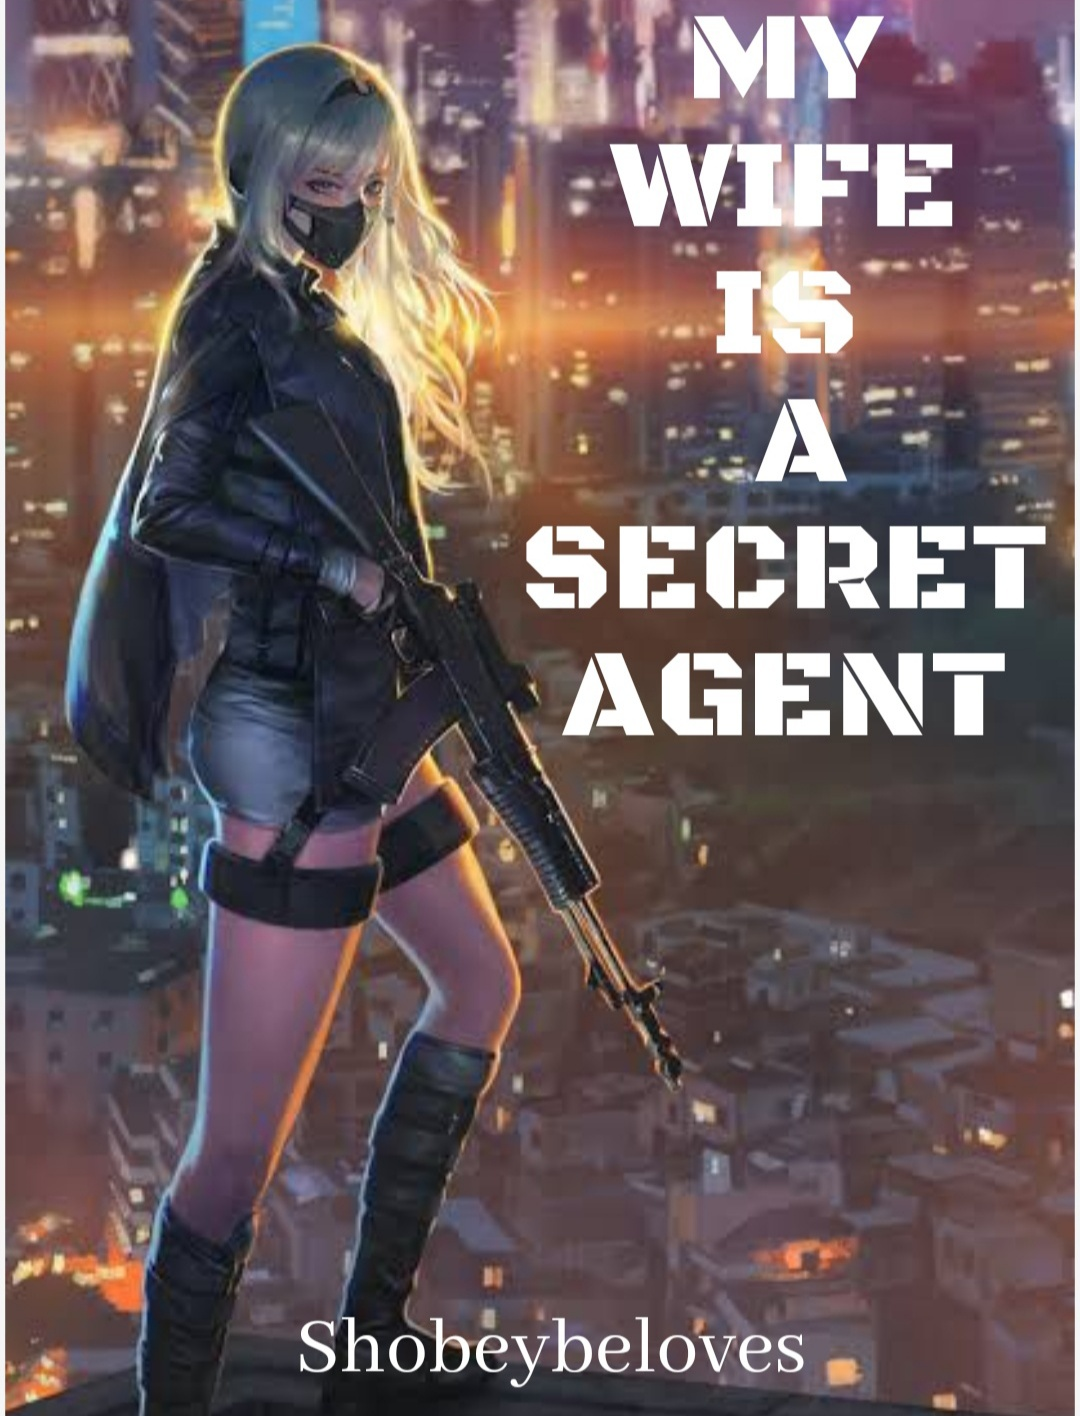 MY WIFE IS A SECRET AGENT